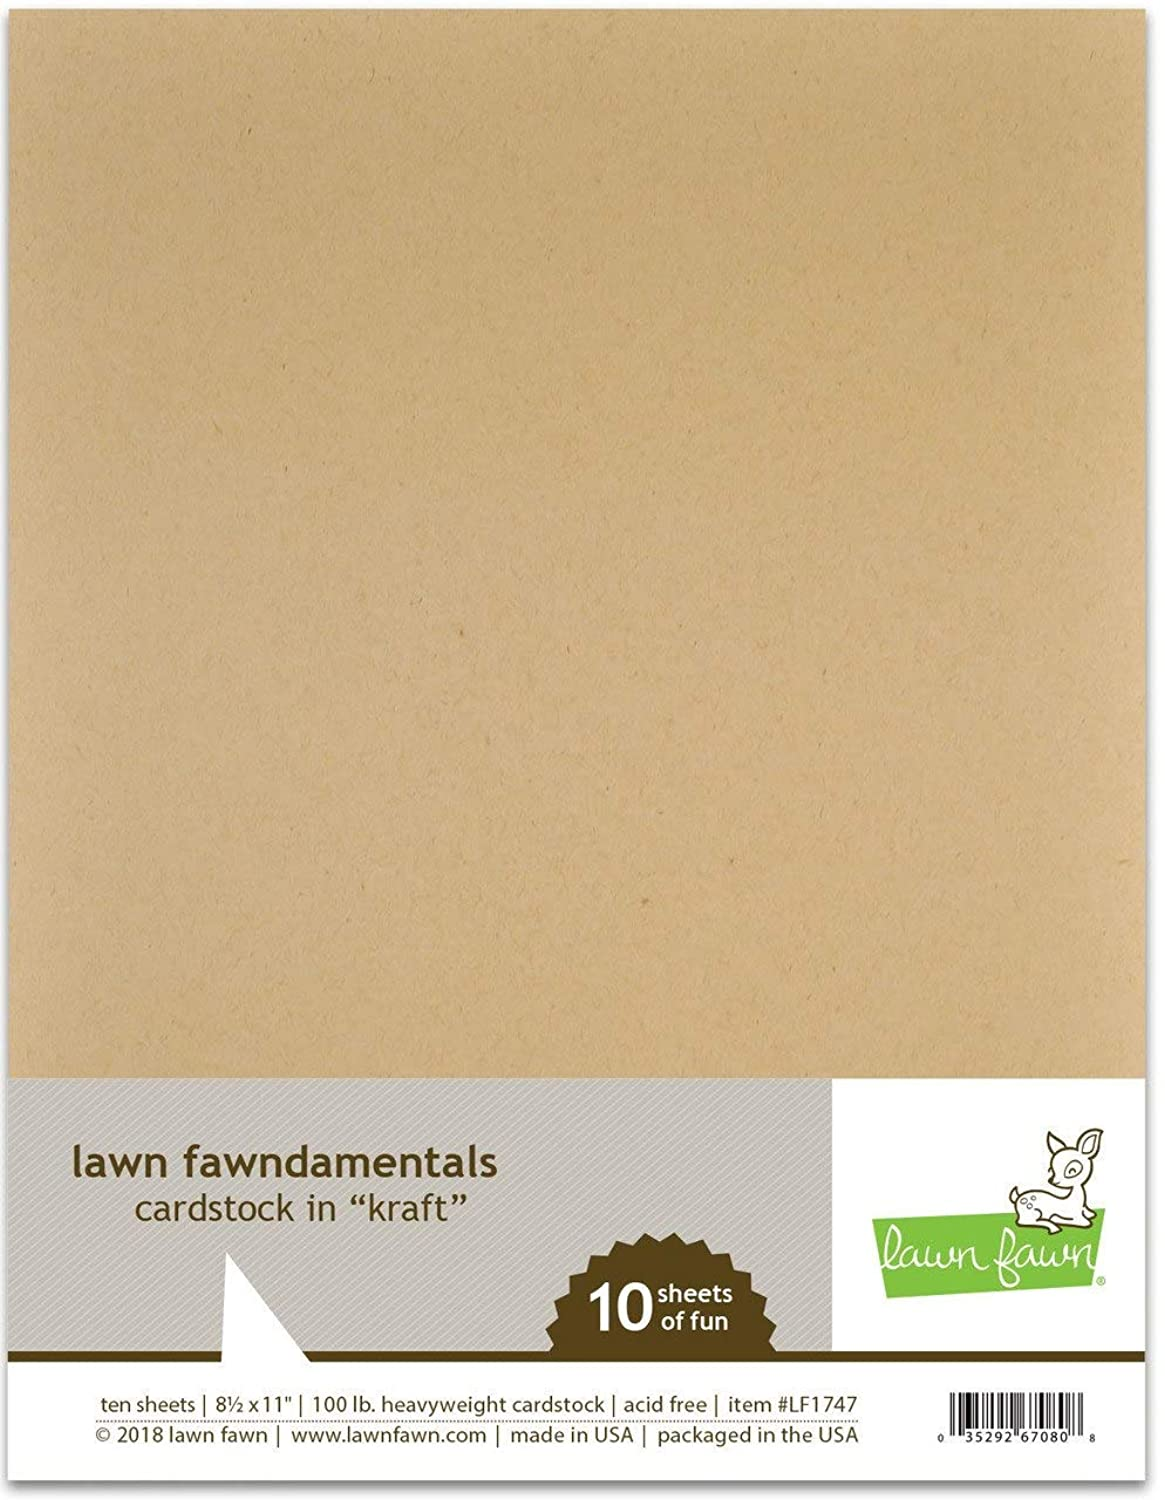 Lawn Fawn Kraft Cardstock, 10 Pack of 8 1/2